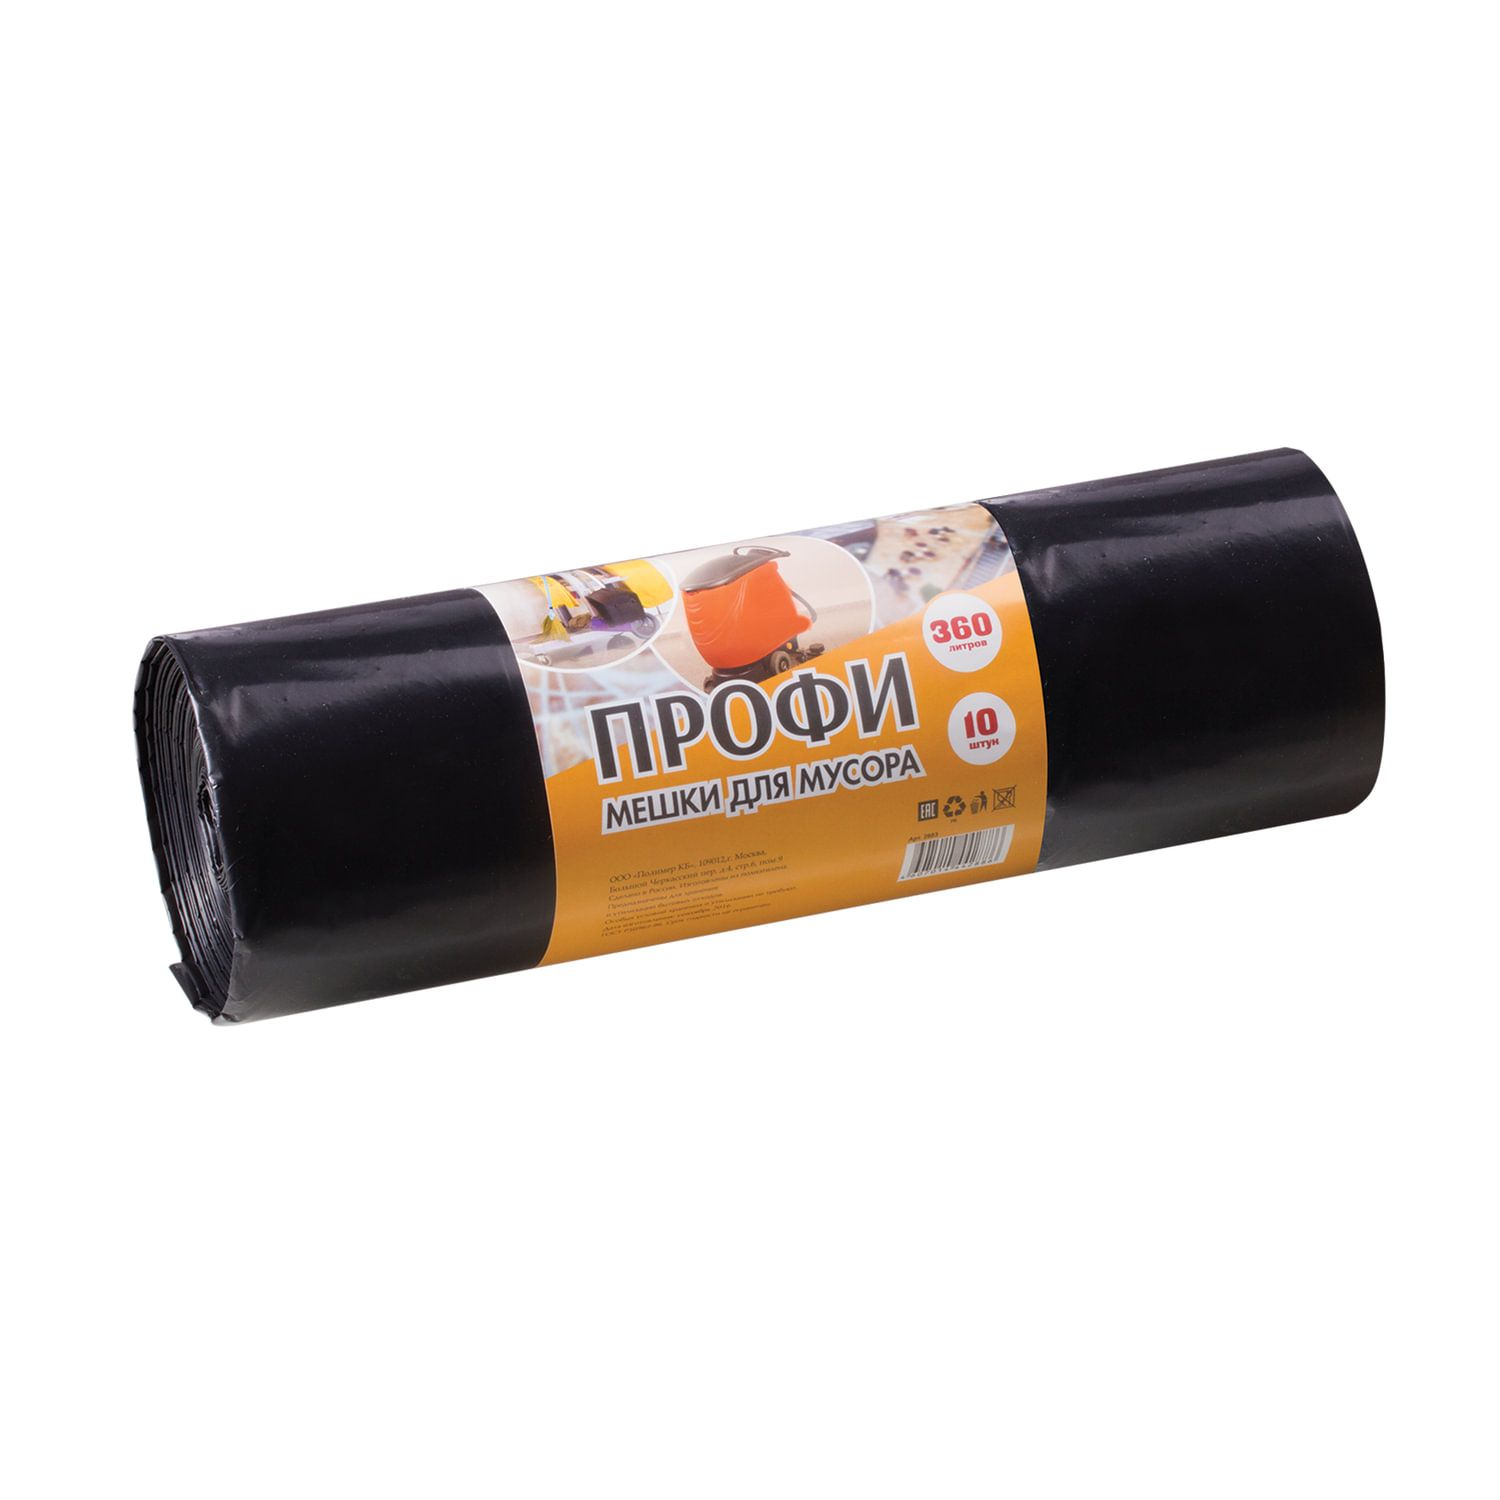 "CONCEPT OF HOUSEHOLD / Garbage bags ""Profi"" 360 l, black, 10 pcs per roll, LDPE, 65 microns, 110x140 cm, extra strong"